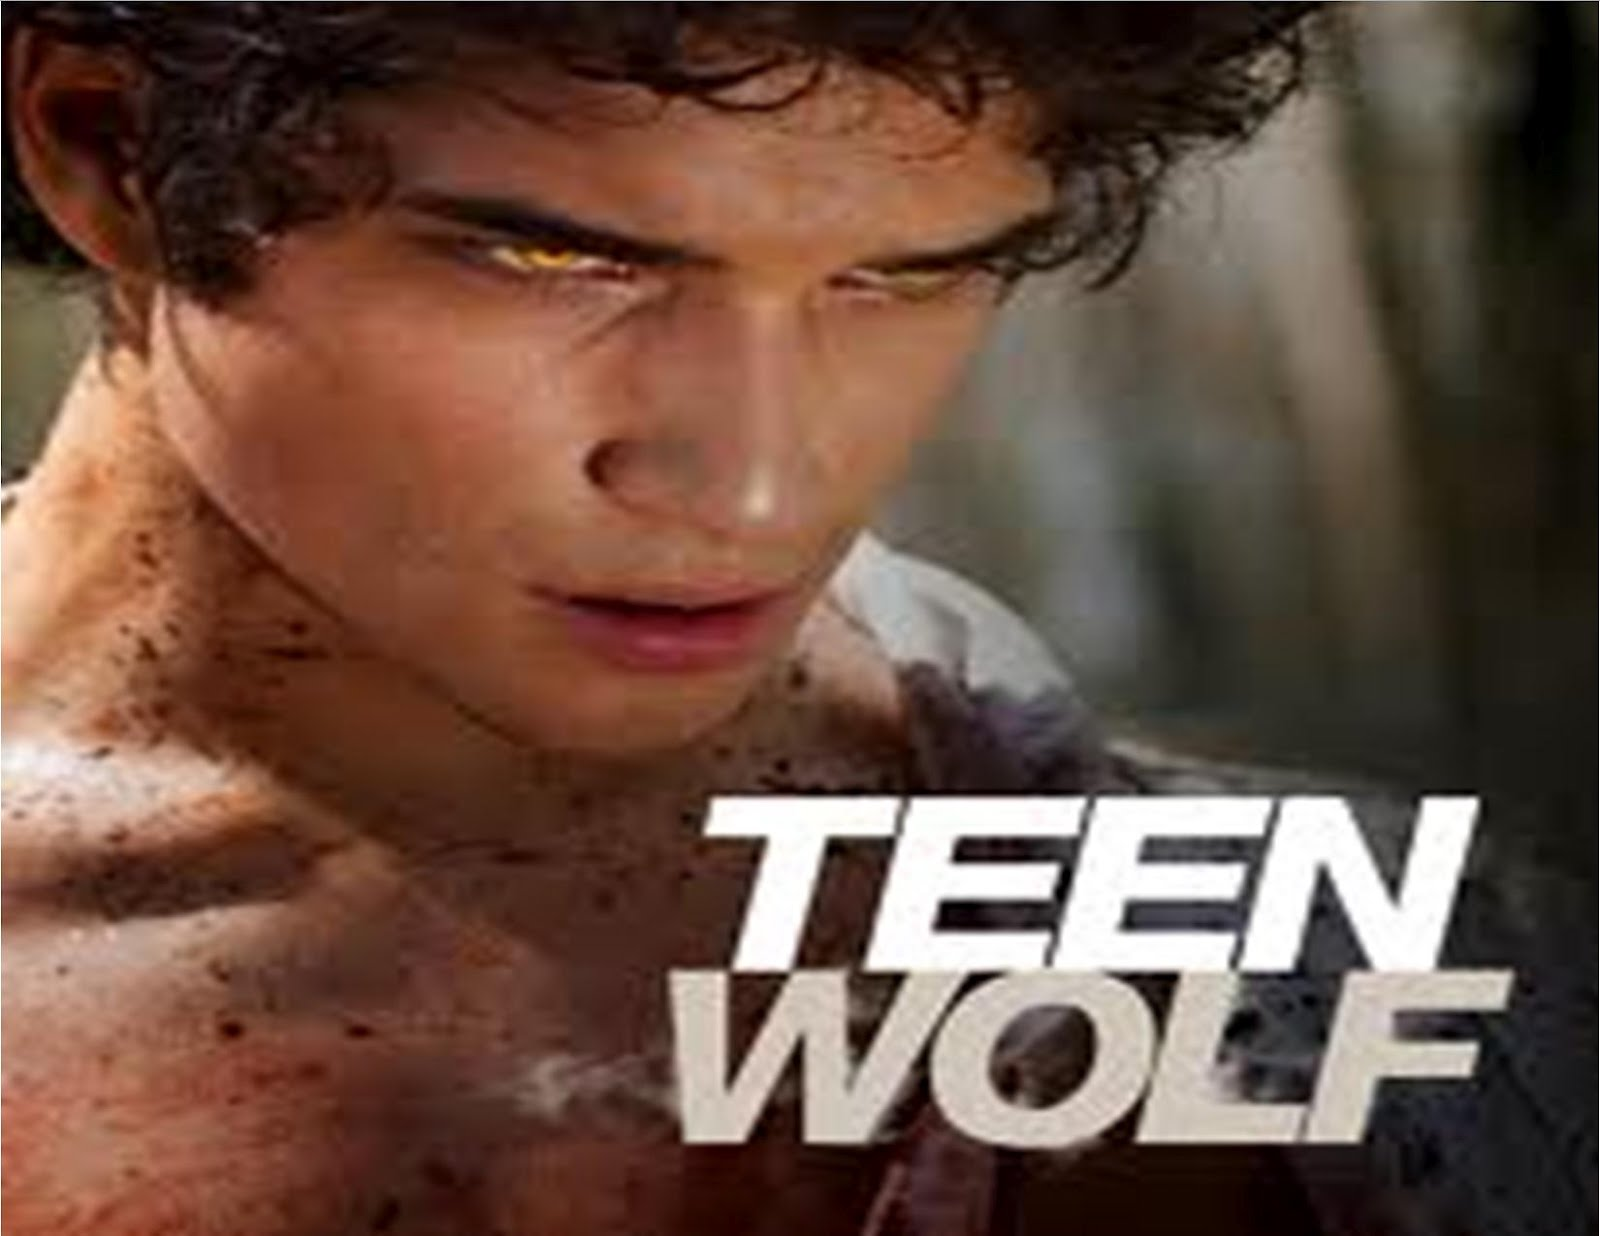 Watch Teen Wolf s02e06 Season 2 Episode 6 2x6 FULL VIDEOS Online